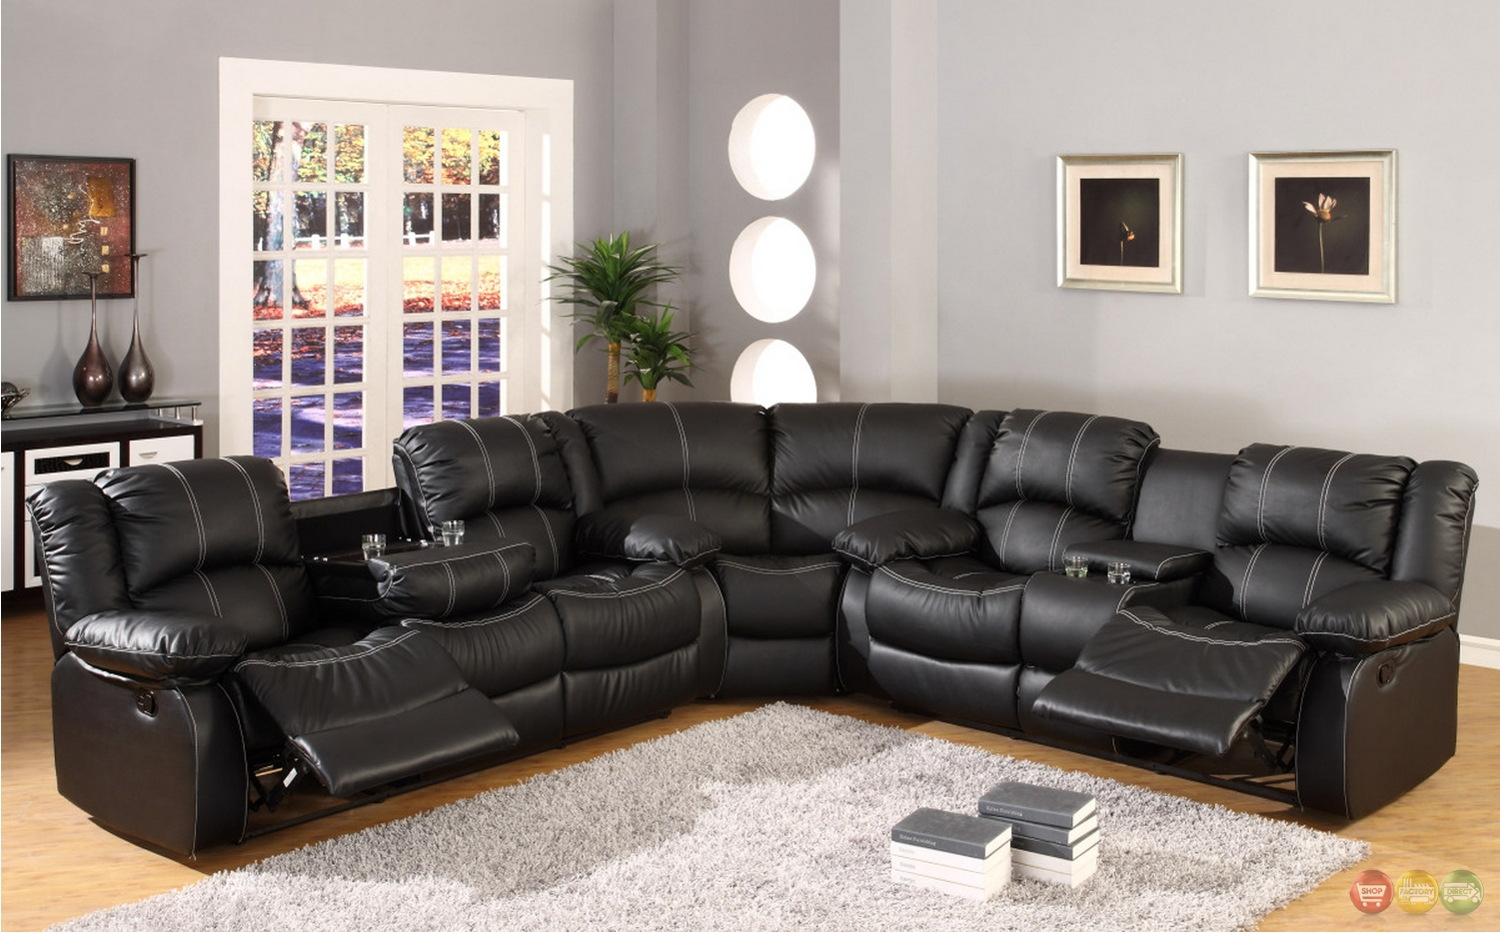 Sofas Center : Reclining Sofas With Consoles Dual Sofa Center Throughout Sofas With Console (View 19 of 20)